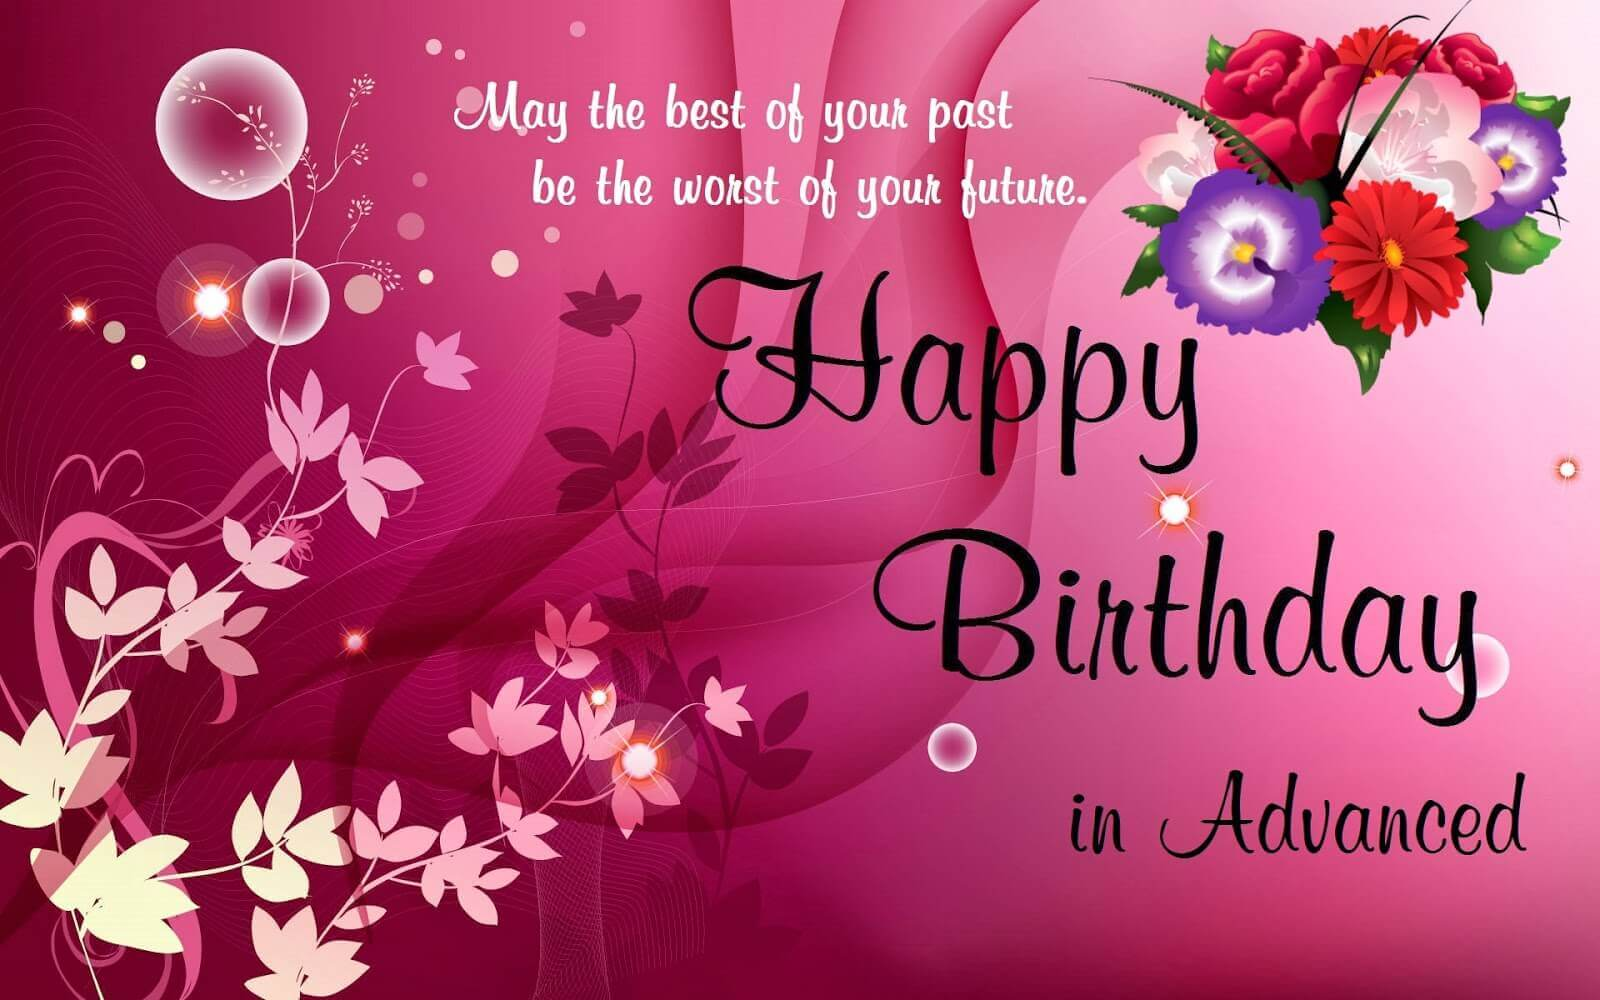 download happy birthday picture message ; Birthday-Wishes-For-Friend-Belated-With-Birthday-Greetings-For-Friends-On-Facebook-Plus-Birthday-Wishes-For-Best-Friend-In-English